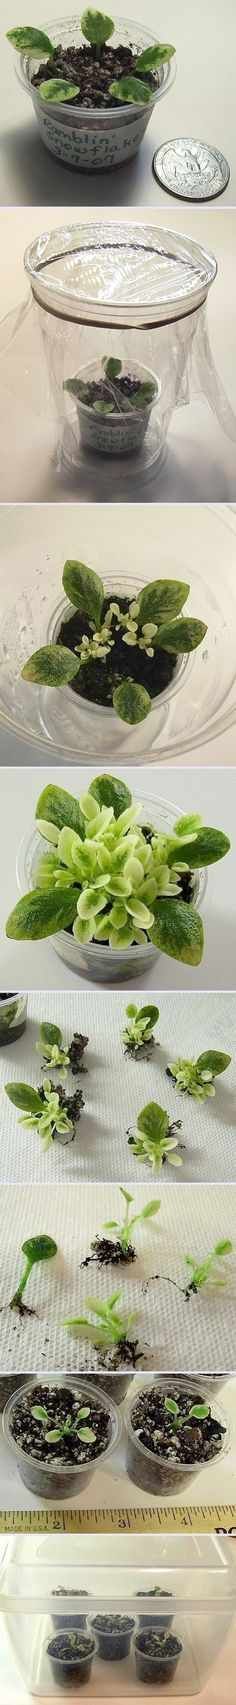 Houseplants for Better Sleep African Violet Propagation. At the point when I Propagate African Violets From Leaves, I Plant The Leaves In The Same Potting Mix That I Use For Planting My Violets. The Container For The Leaves Should Always Have Holes In The Garden Planters, Indoor Garden, Indoor Plants, Plantas Indoor, Saintpaulia, Inside Plants, Plantation, African Violet, Growing Plants